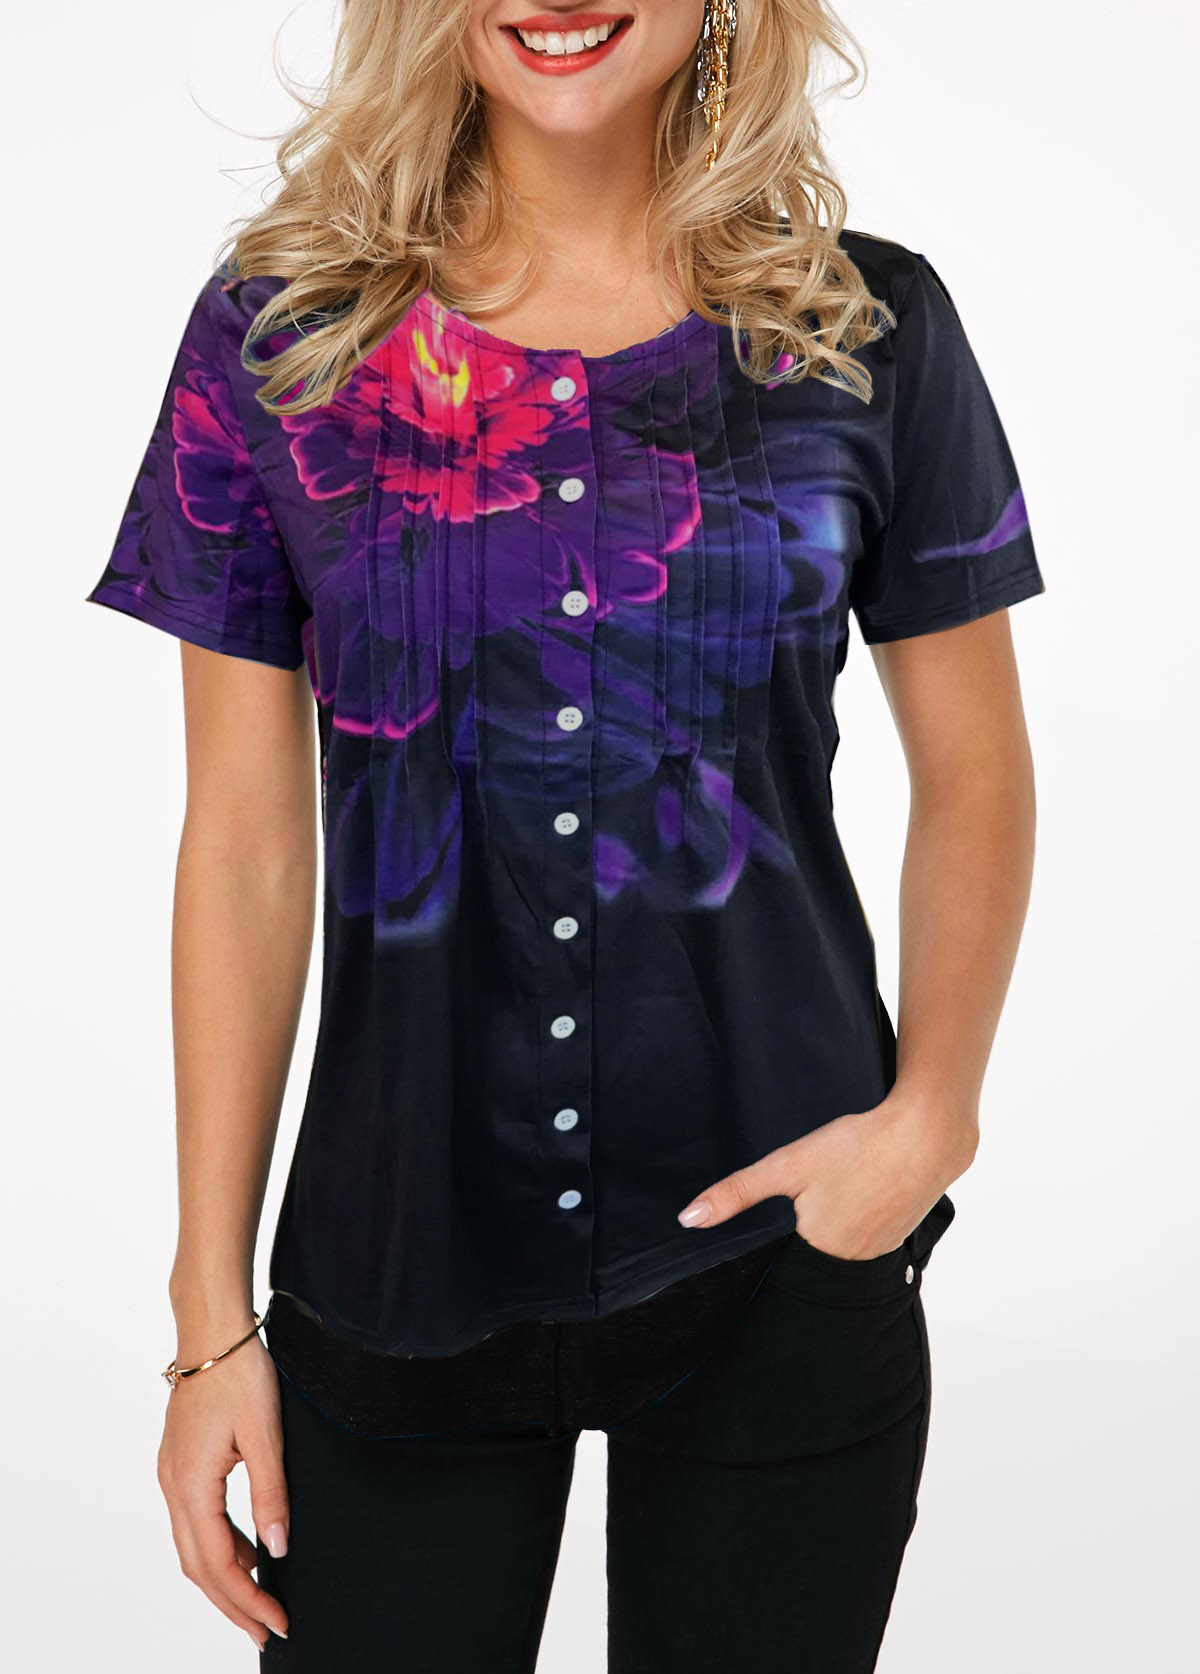 Crinkle Chest Button Up Black T Shirt